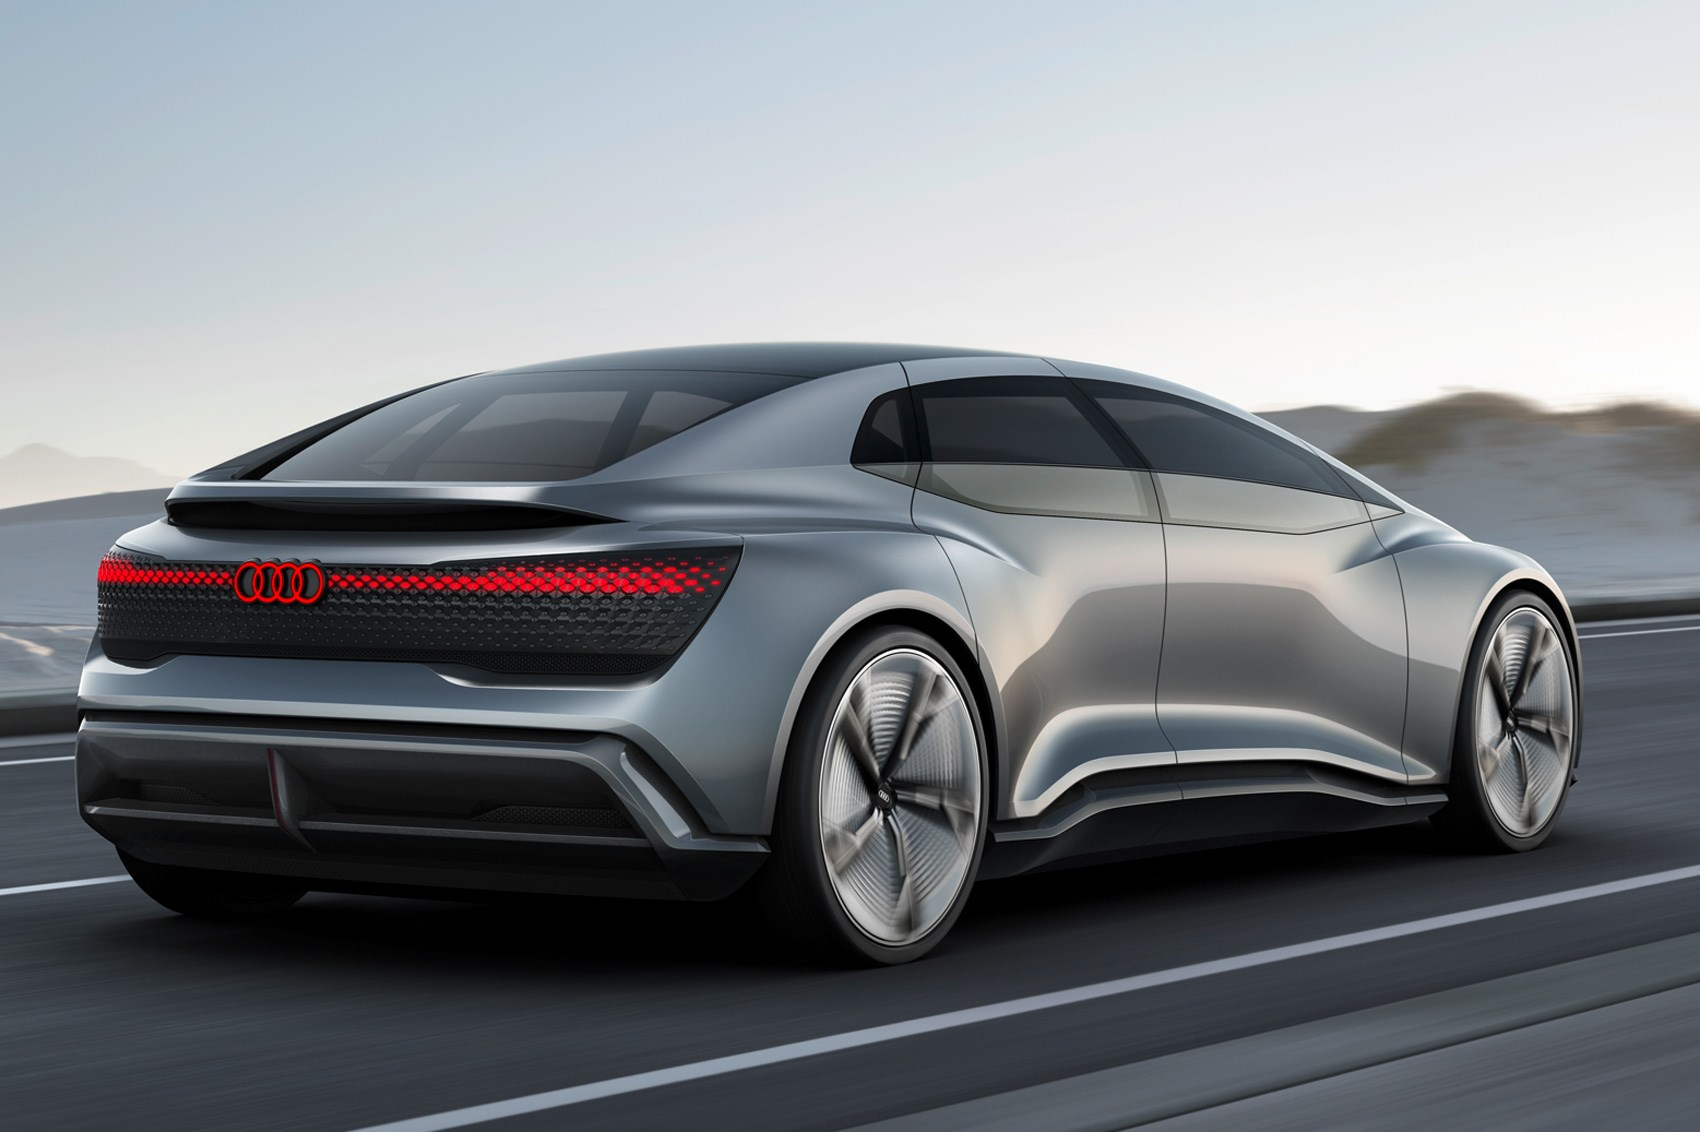 Audi Aicon And Elaine Concepts At Frankfurt Motor Show CAR - Audi concept